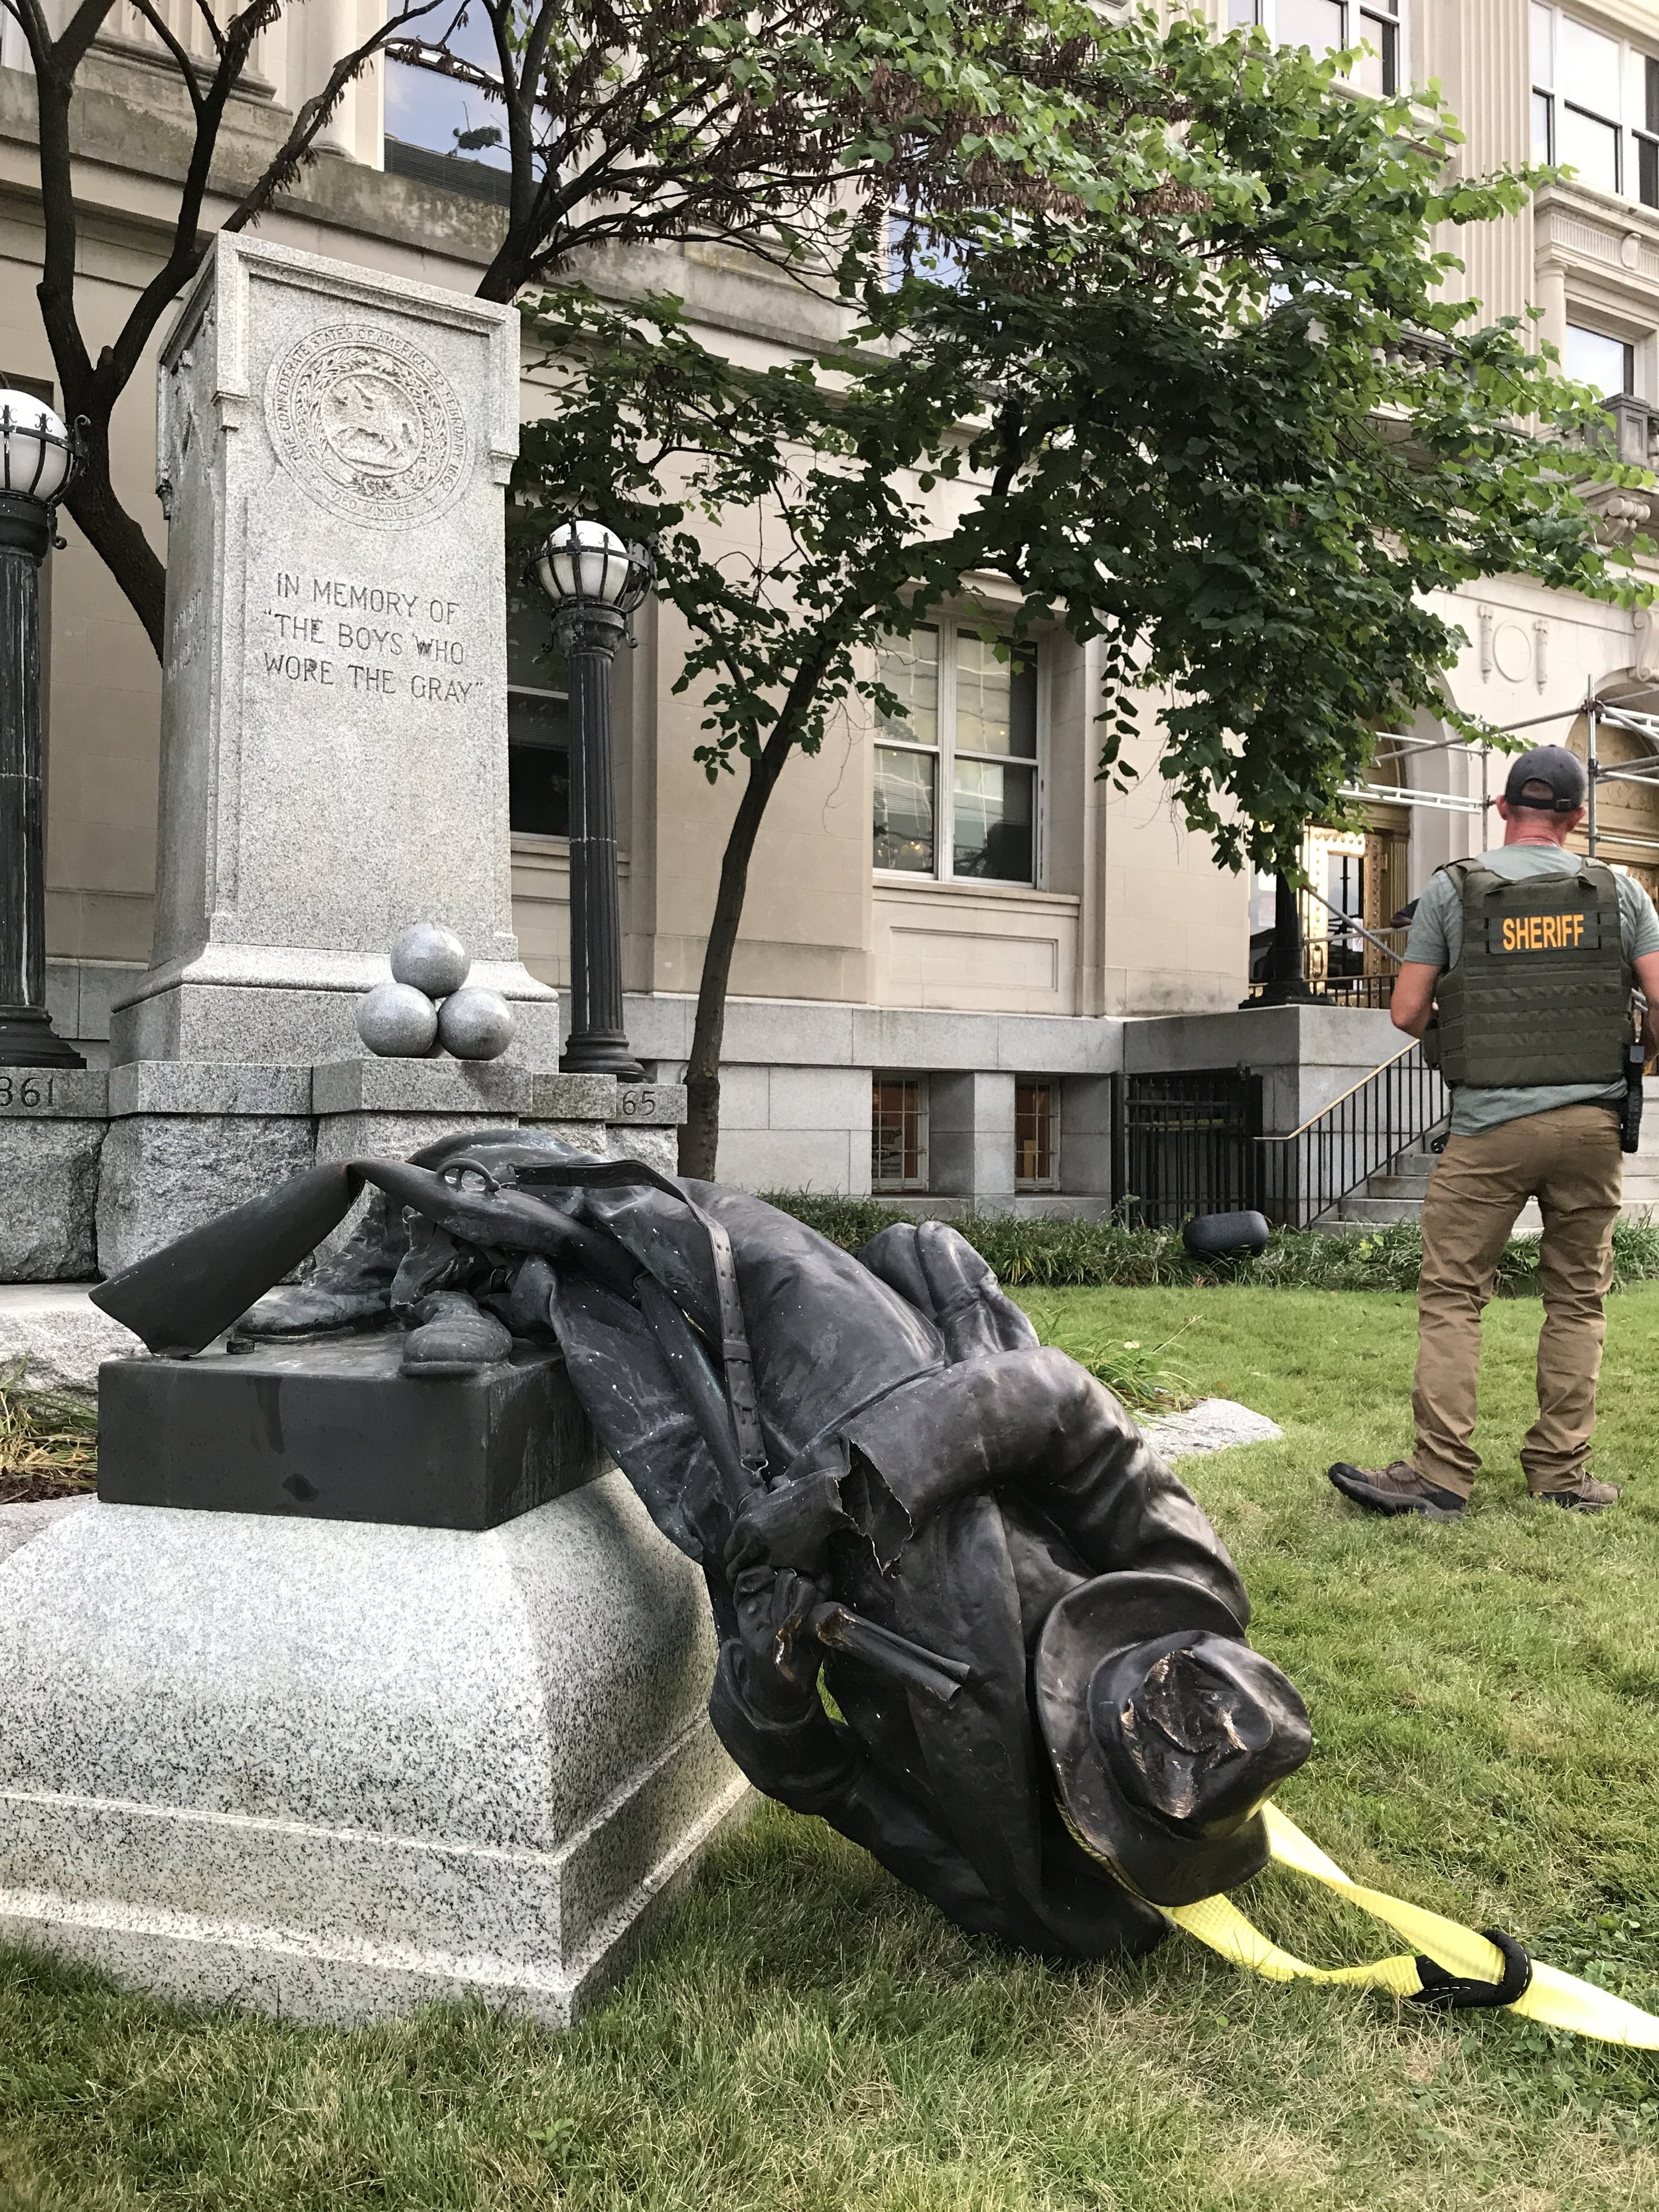 Days after clashes in Charlottesville, Va., protesters toppled a statue of a Confederate soldier that had stood in front of the old Durham County Courthouse in North Carolina for nearly a century.   Image by Kate Medley/Reuters